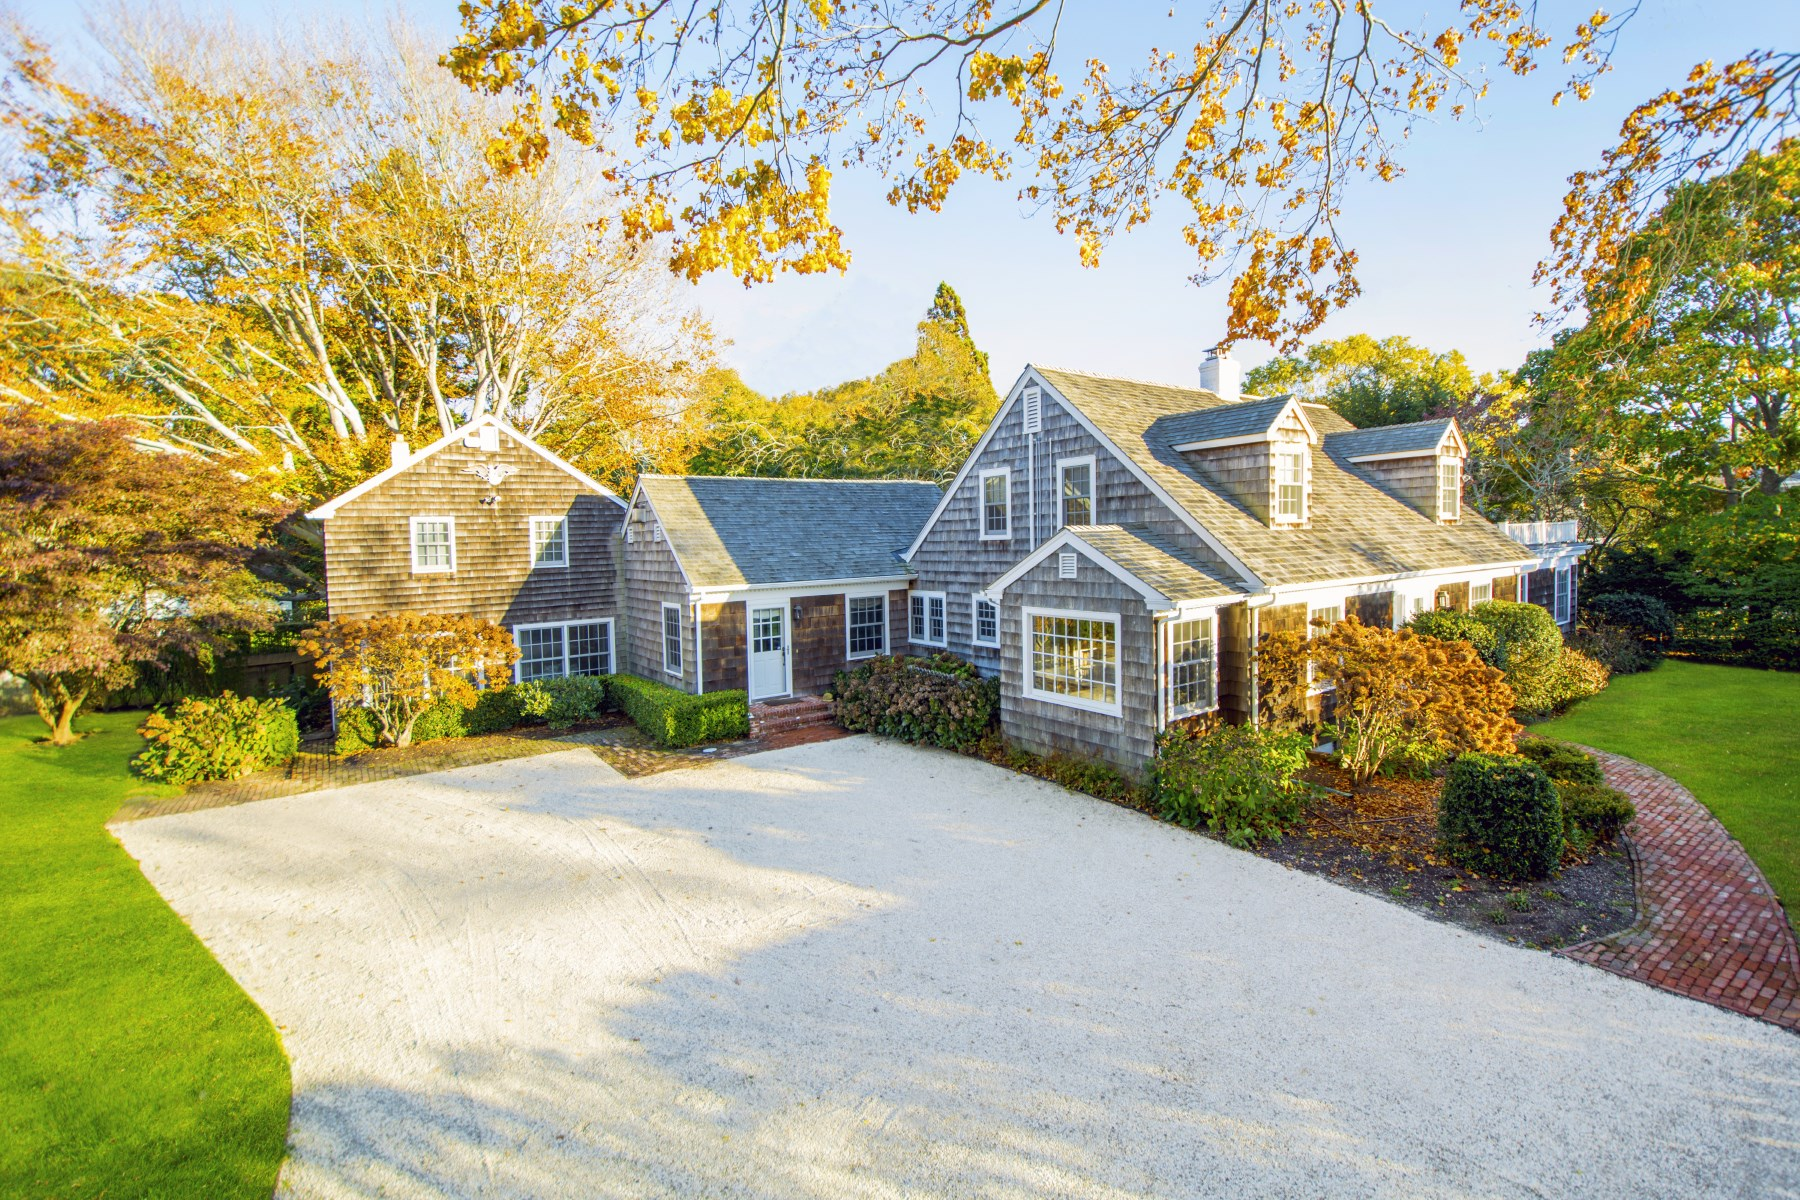 """Single Family Home for Rent at Lovely Sagaponack """"Cottage"""" with Pool 83 Sagg Main Street Sagaponack, New York 11962 United States"""